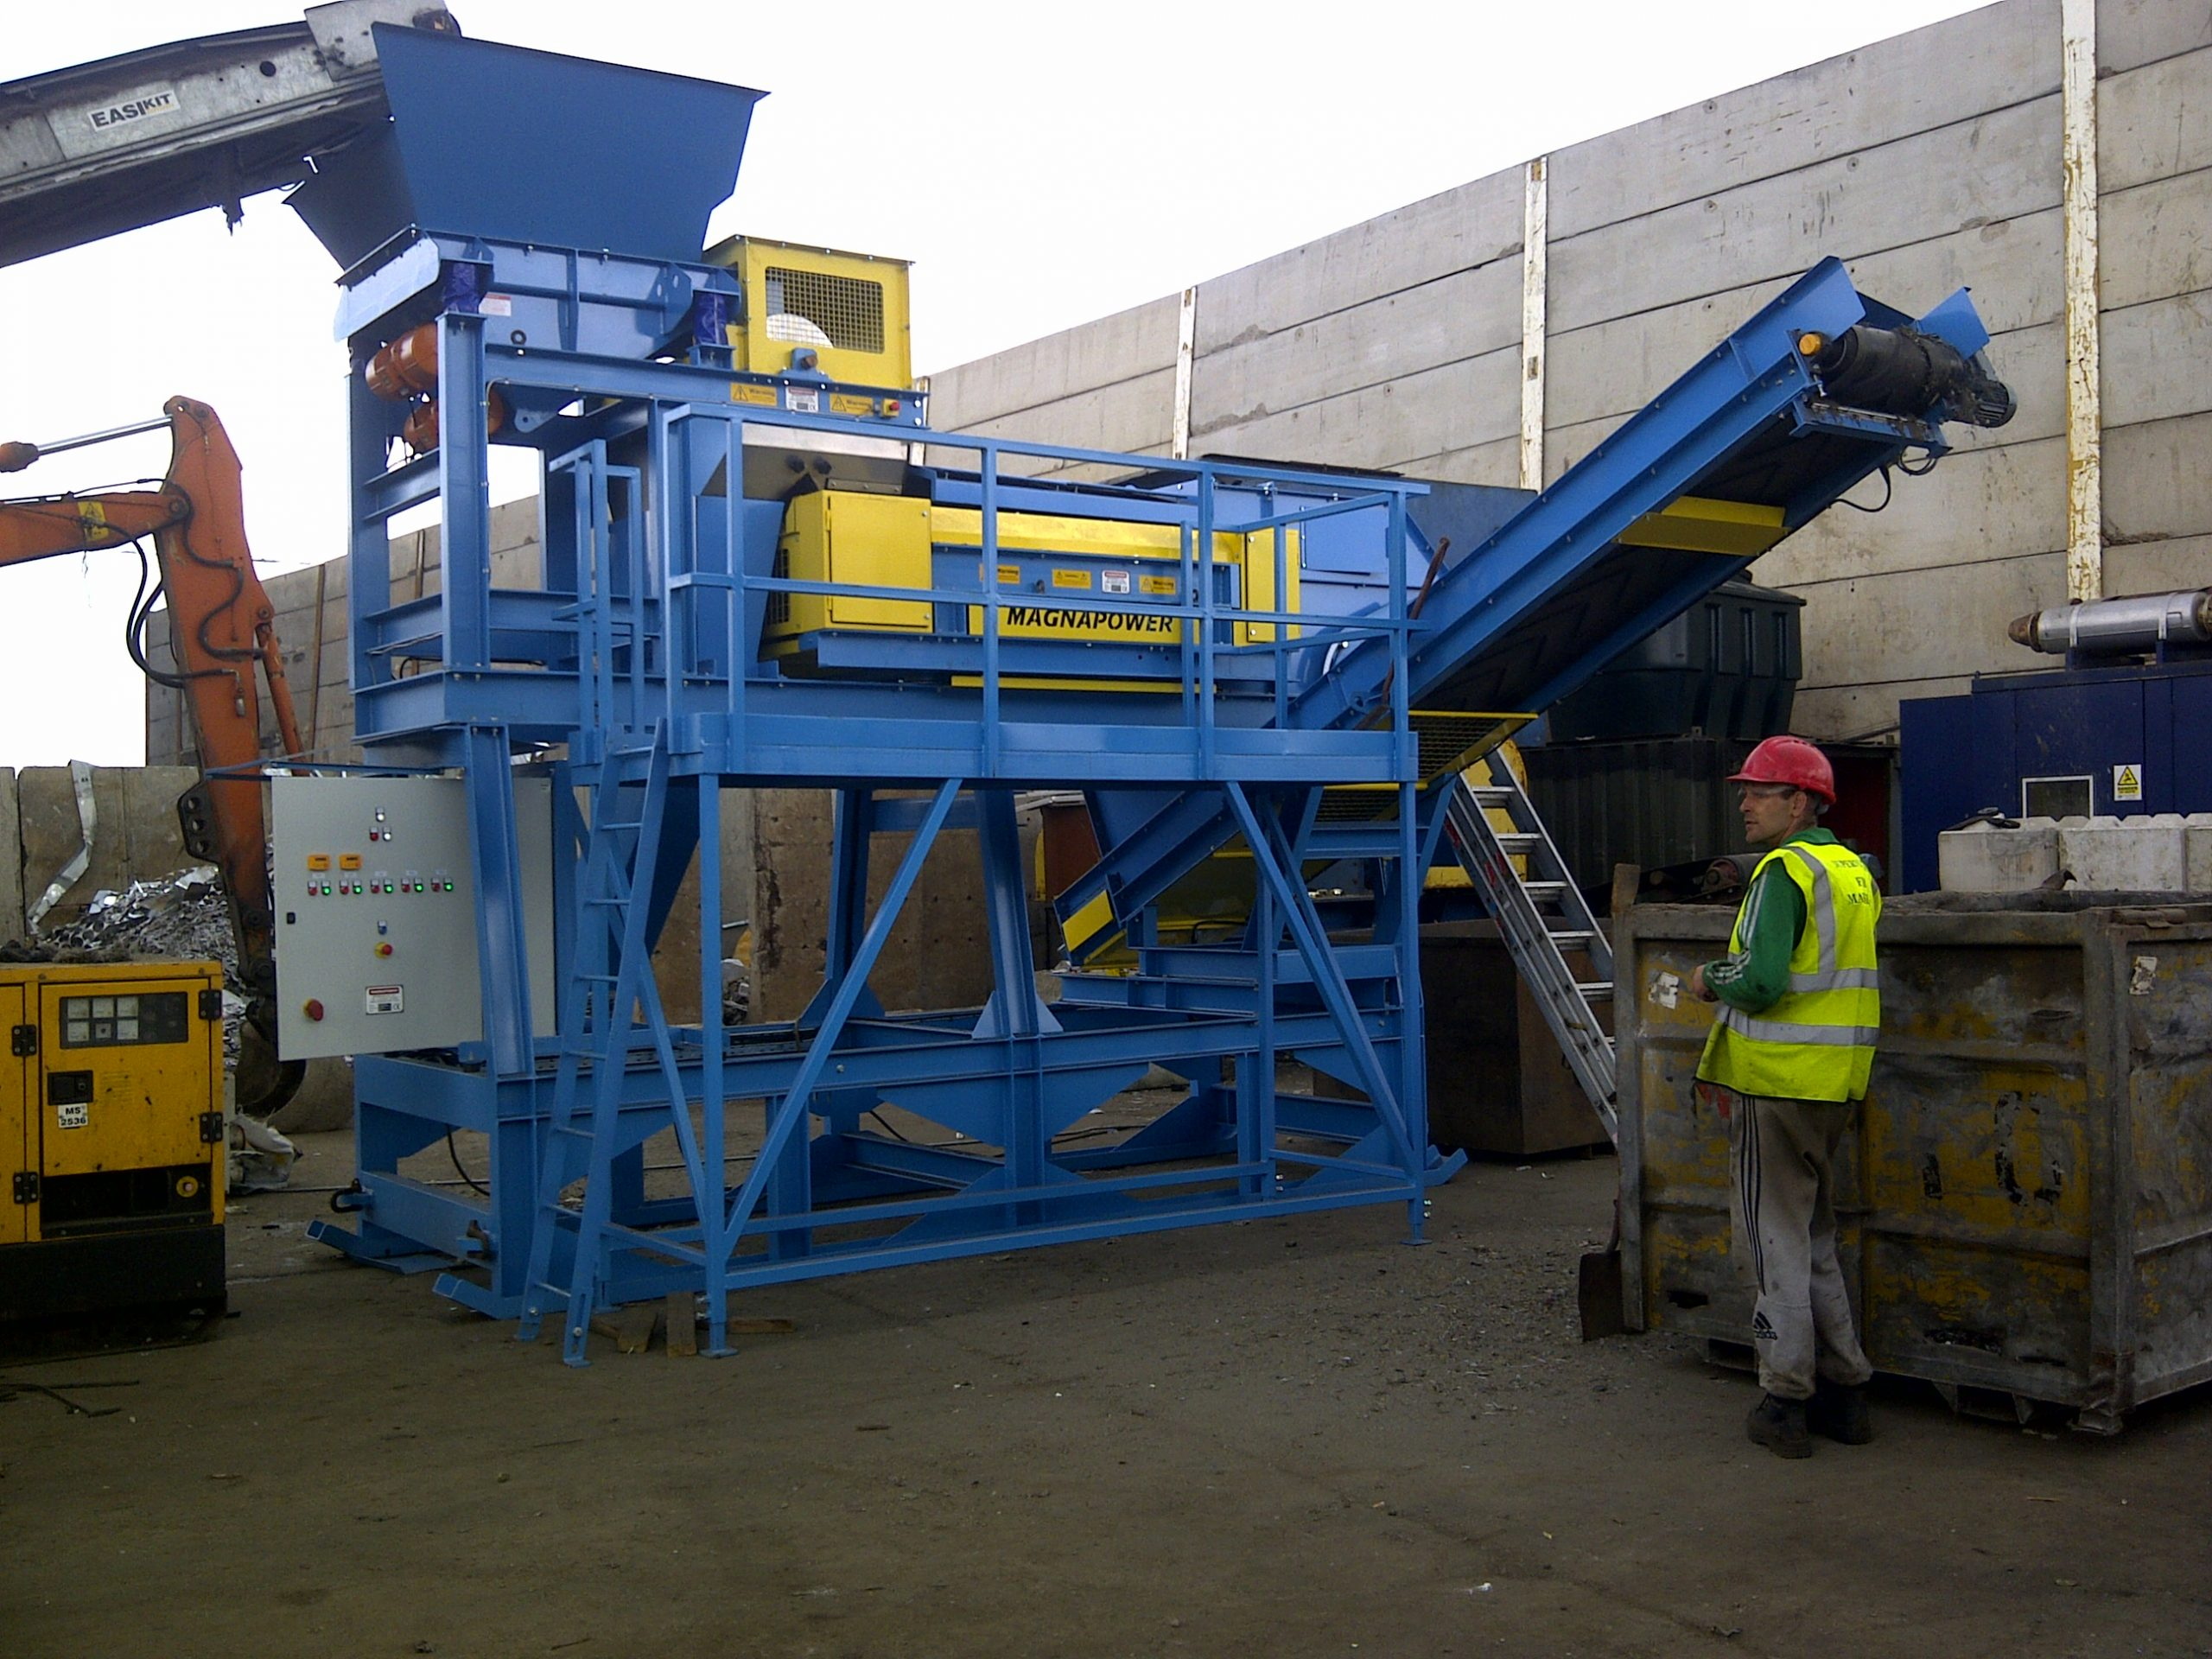 Metal Recycling plant recovery of 25mm non ferrous metals